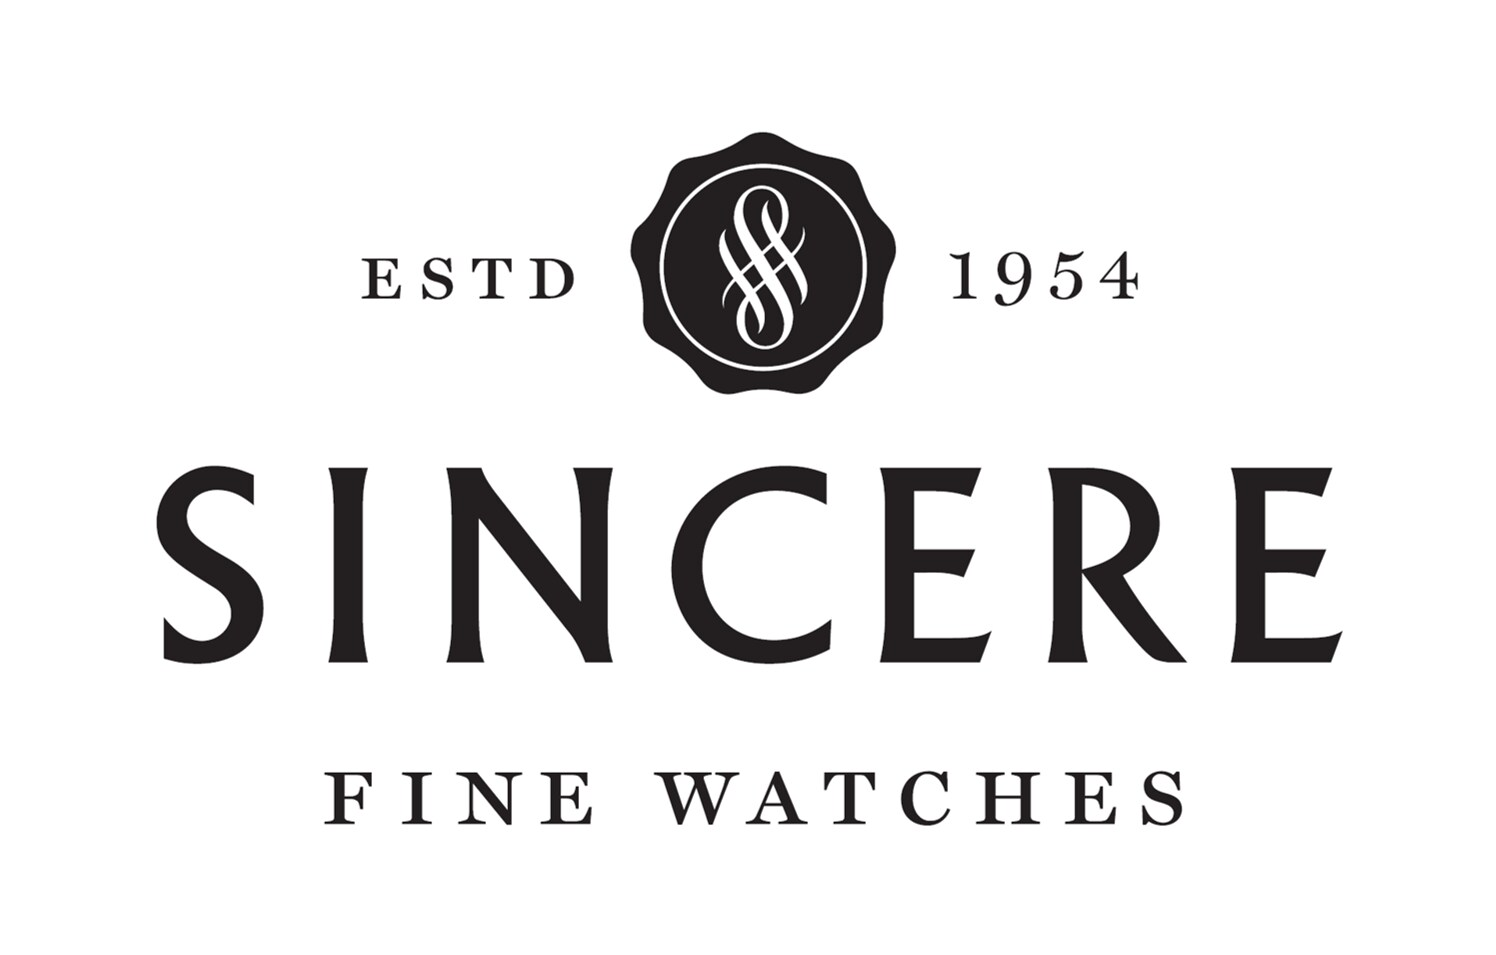 Sincere Fine Watches